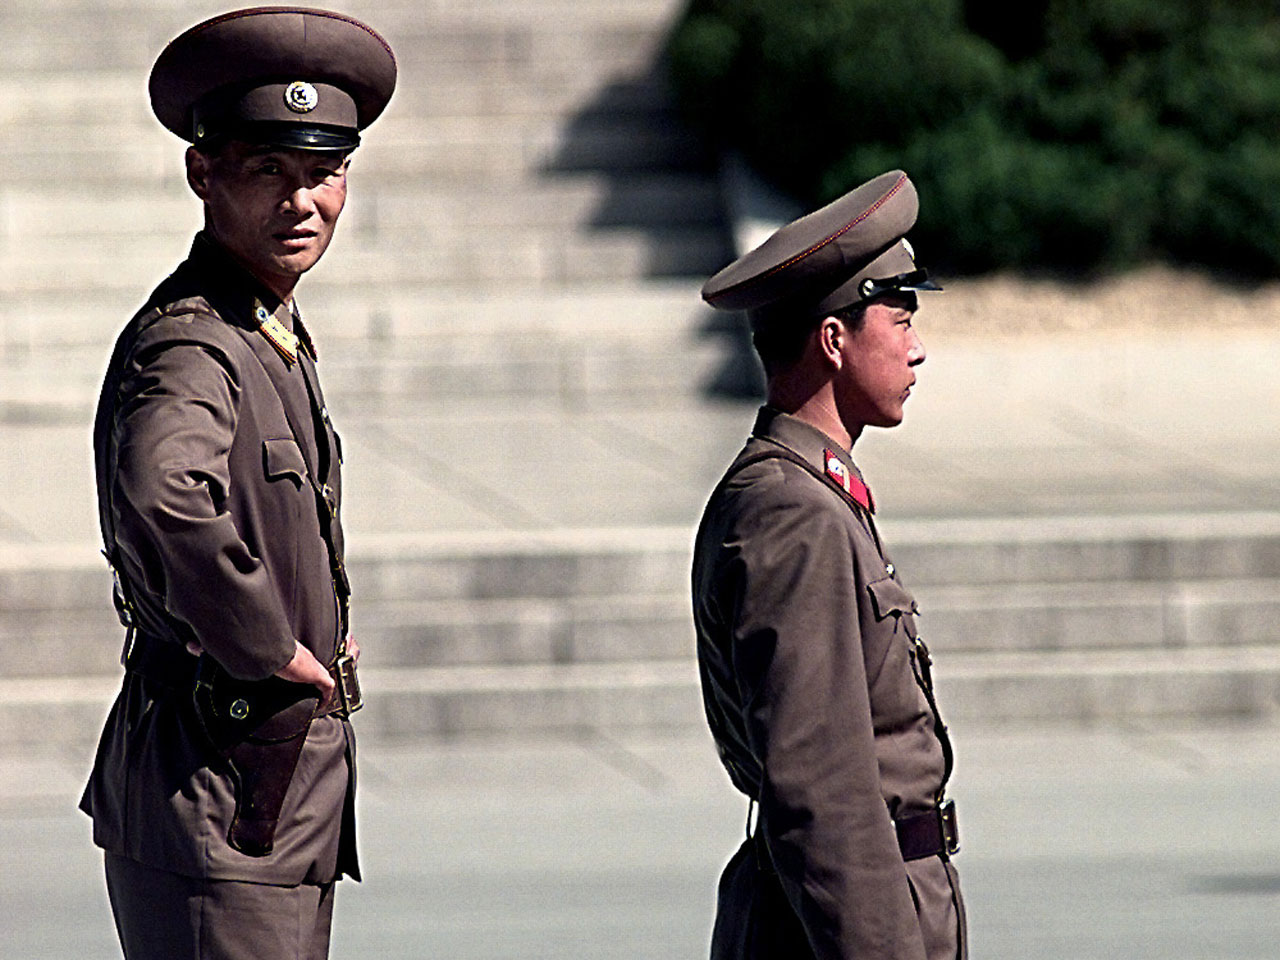 North Korean border guards - photo by Jeffrey Allen)